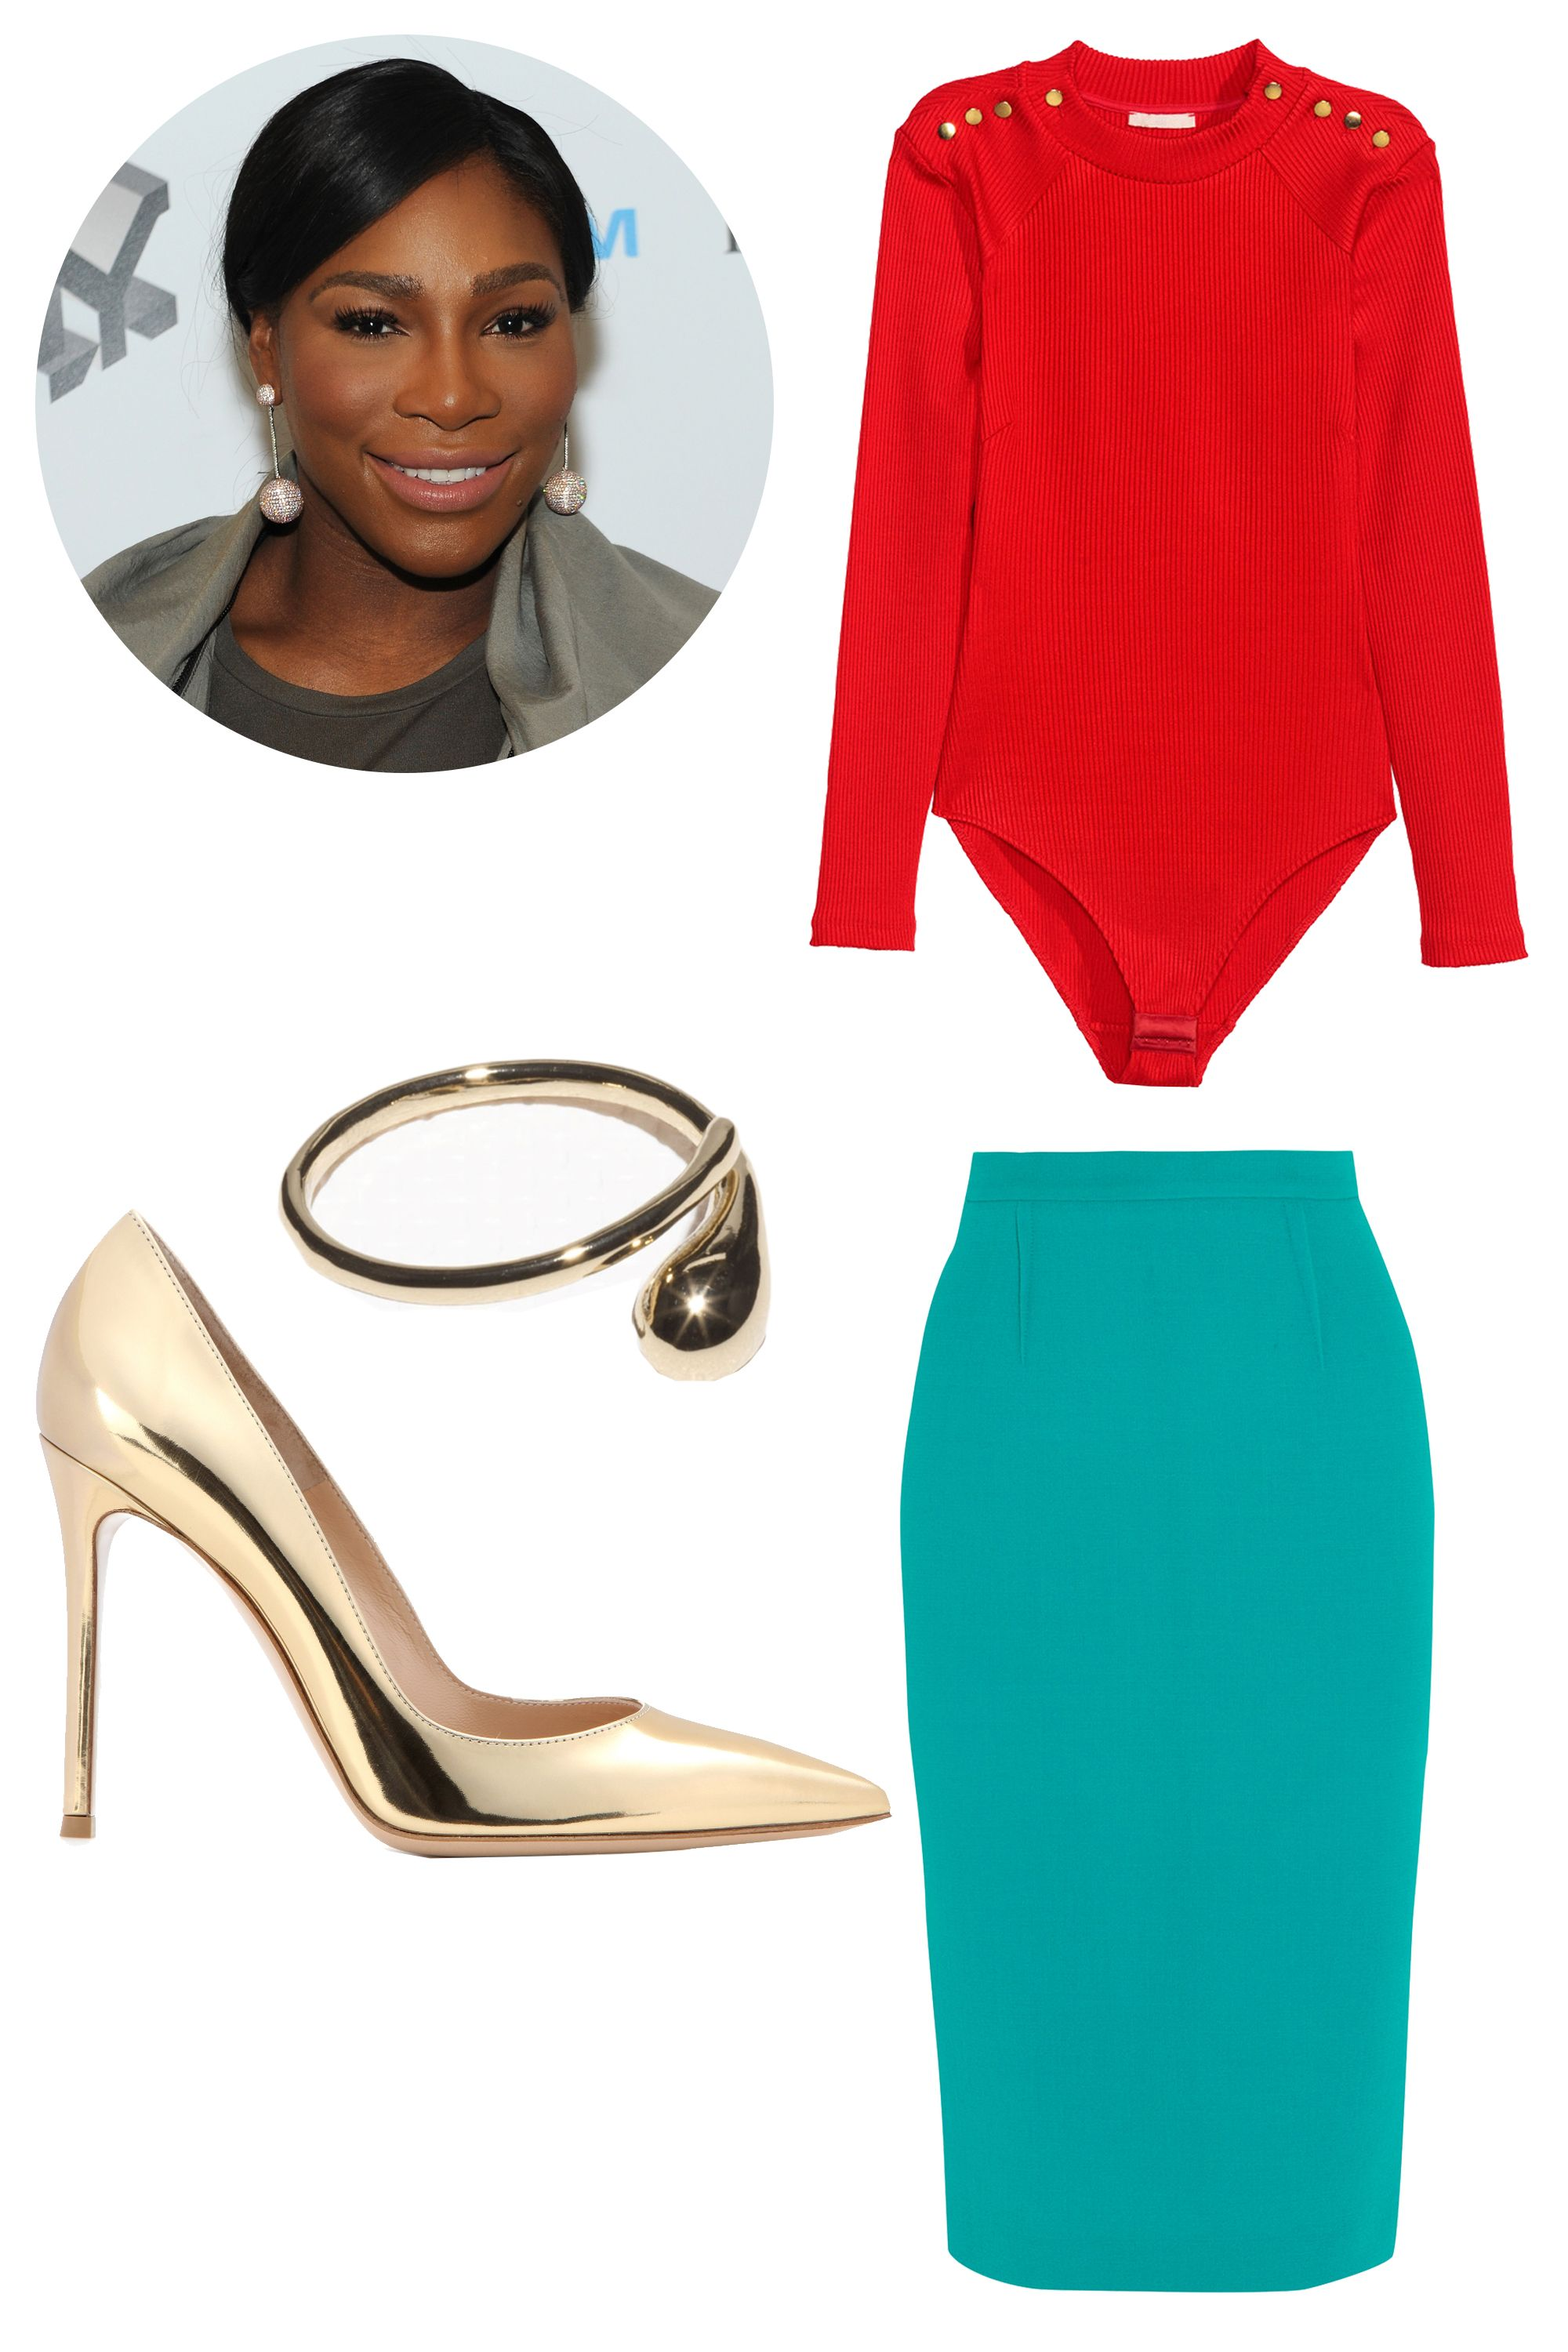 "<p>Serena Williams has a body she has <em>worked</em> for, and she loves to show it off in bright colors. This outfit is great for an extrovert going out to a nice dinner. <em></em></p><p><em>H&M Ribbed Bodysuit, $35; <a href=""http://www.hm.com/us/product/36027?article=36027-B"" target=""_blank"">hm.com</a></em></p><p><em>Roland Mouret Arreton Wool-Crepe Pencil Skirt, $875; <a href=""https://www.net-a-porter.com/us/en/product/651052/roland_mouret/arreton-wool-crepe-pencil-skirt"" target=""_blank"">net-a-porter.com</a></em></p><p><em>Gianvito Rossi Metallic Leather Pumps, $695; <a href=""http://www.mytheresa.com/en-us/metallic-leather-pumps-423836.html?catref=category"" target=""_blank"">mytheresa.com</a></em></p><p><em>& Other Stories Droplet Ring, $22; </em><a href=""http://www.stories.com/us/Jewellery/Rings/Droplet_Ring/582802-100516508.1"" target=""_blank""><em>stories.com</em></a></p>"